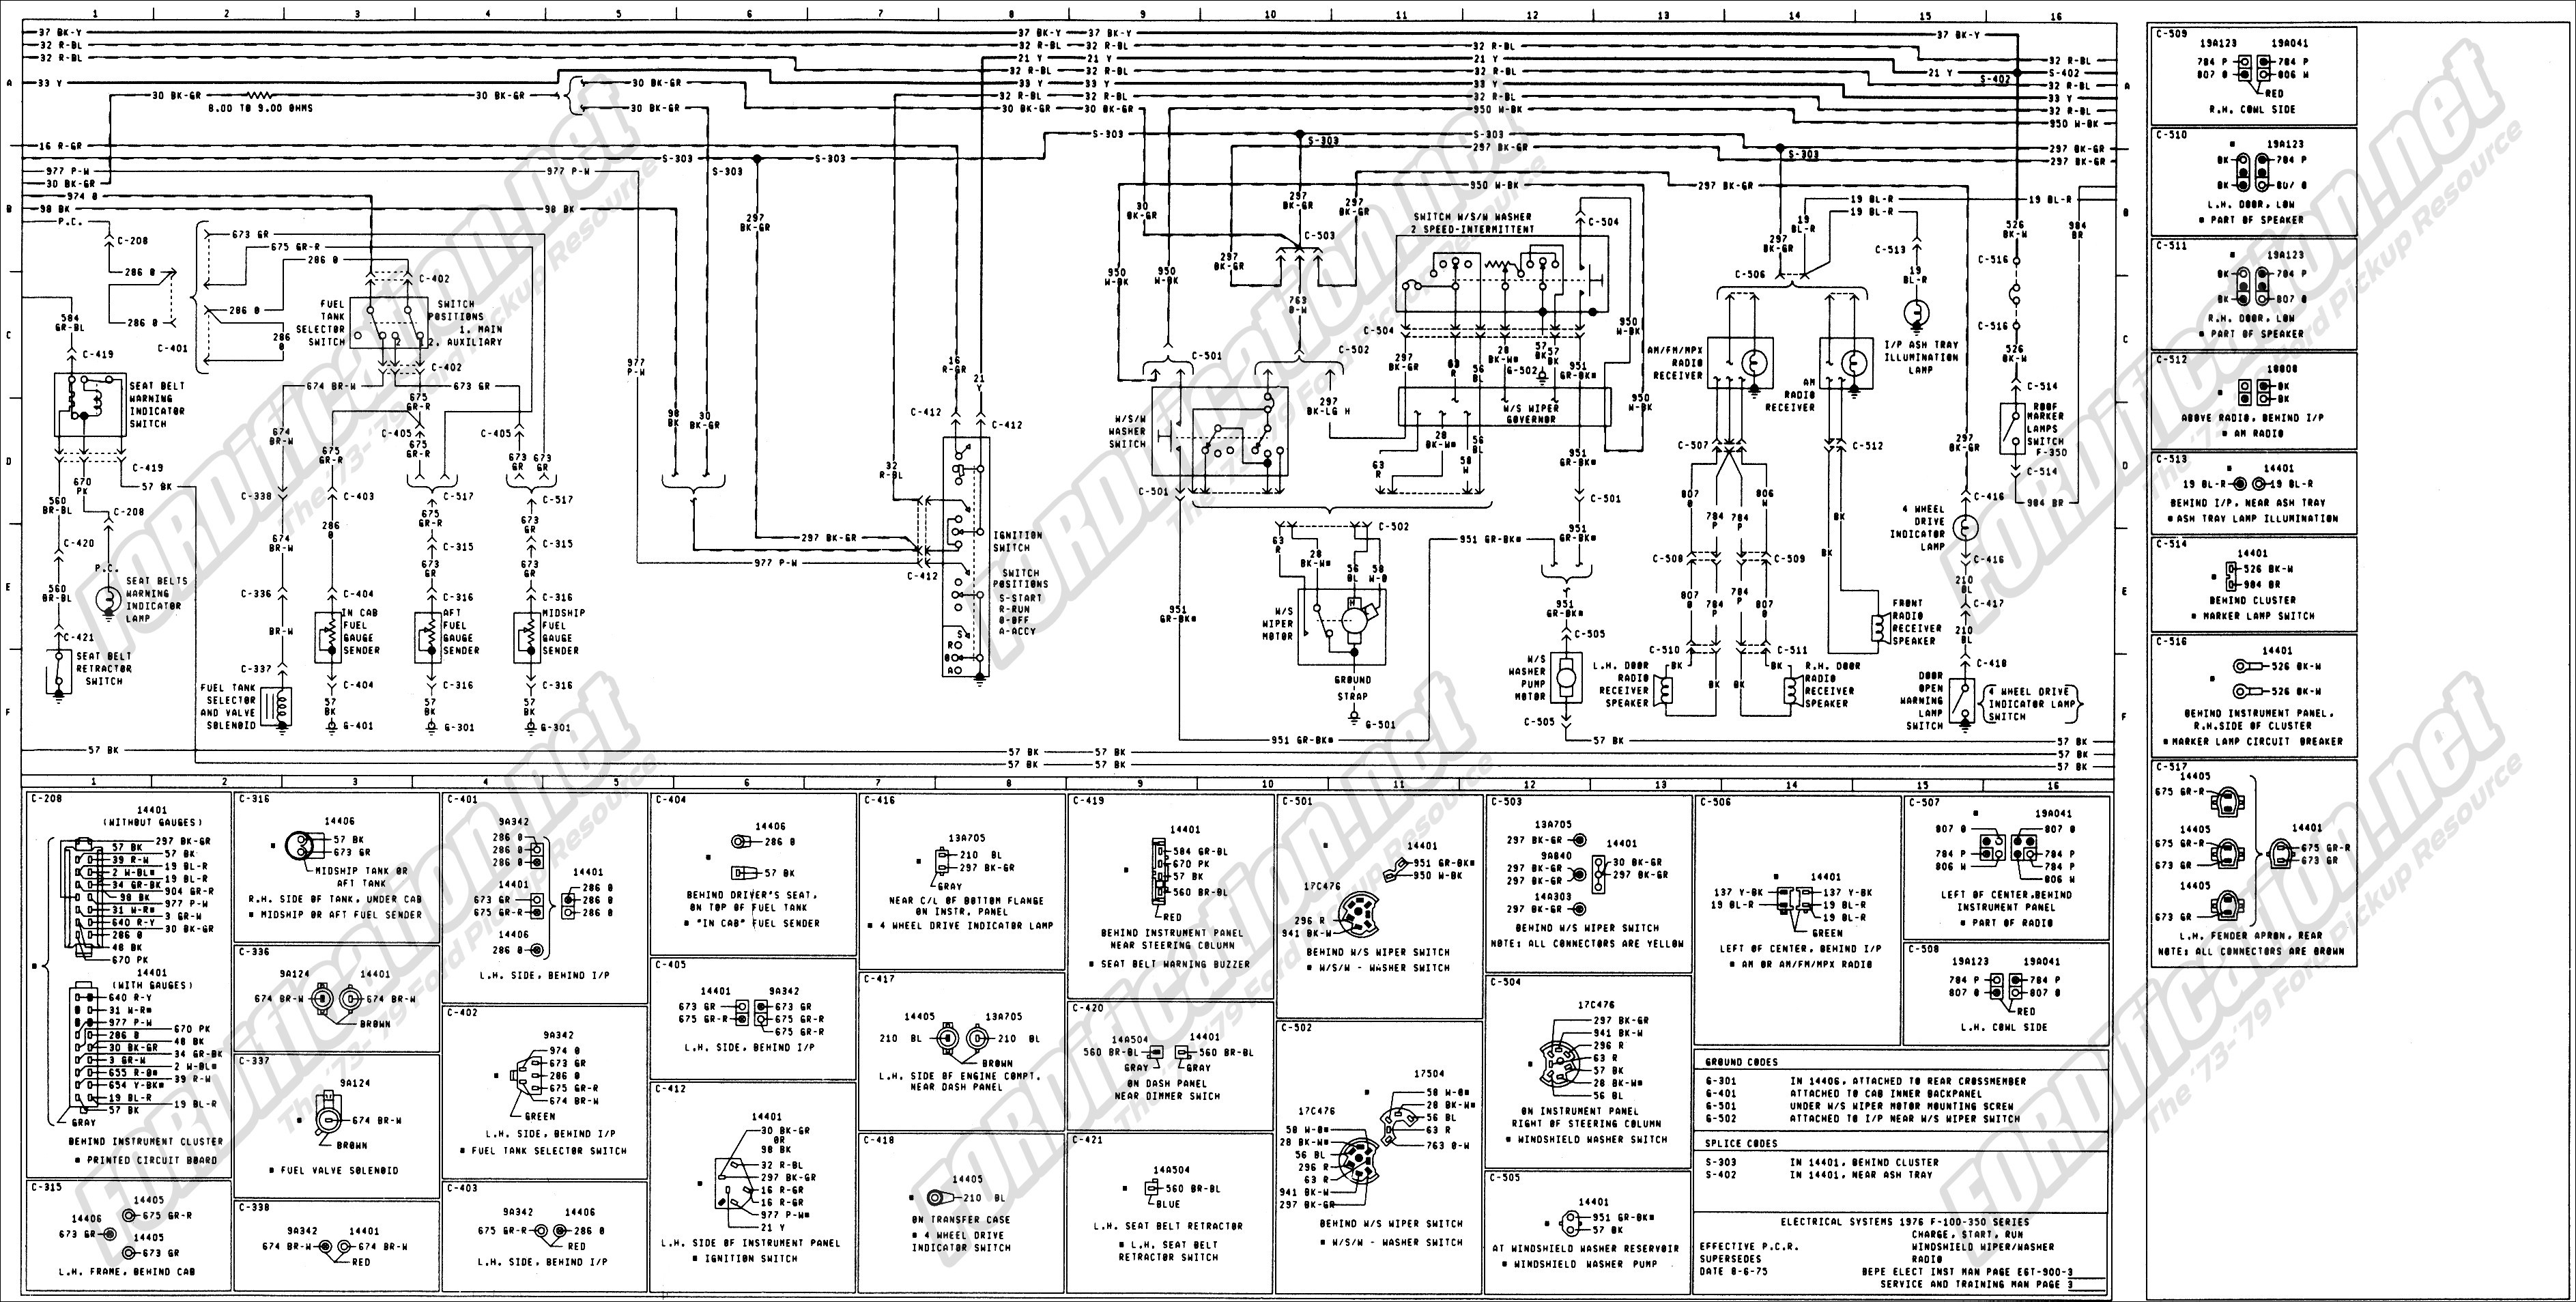 1977 ford f150 wiring diagram new wiring diagram image rh mainetreasurechest com 1977 ford f 150 wire diagram 1977 ford f 150 wire diagram